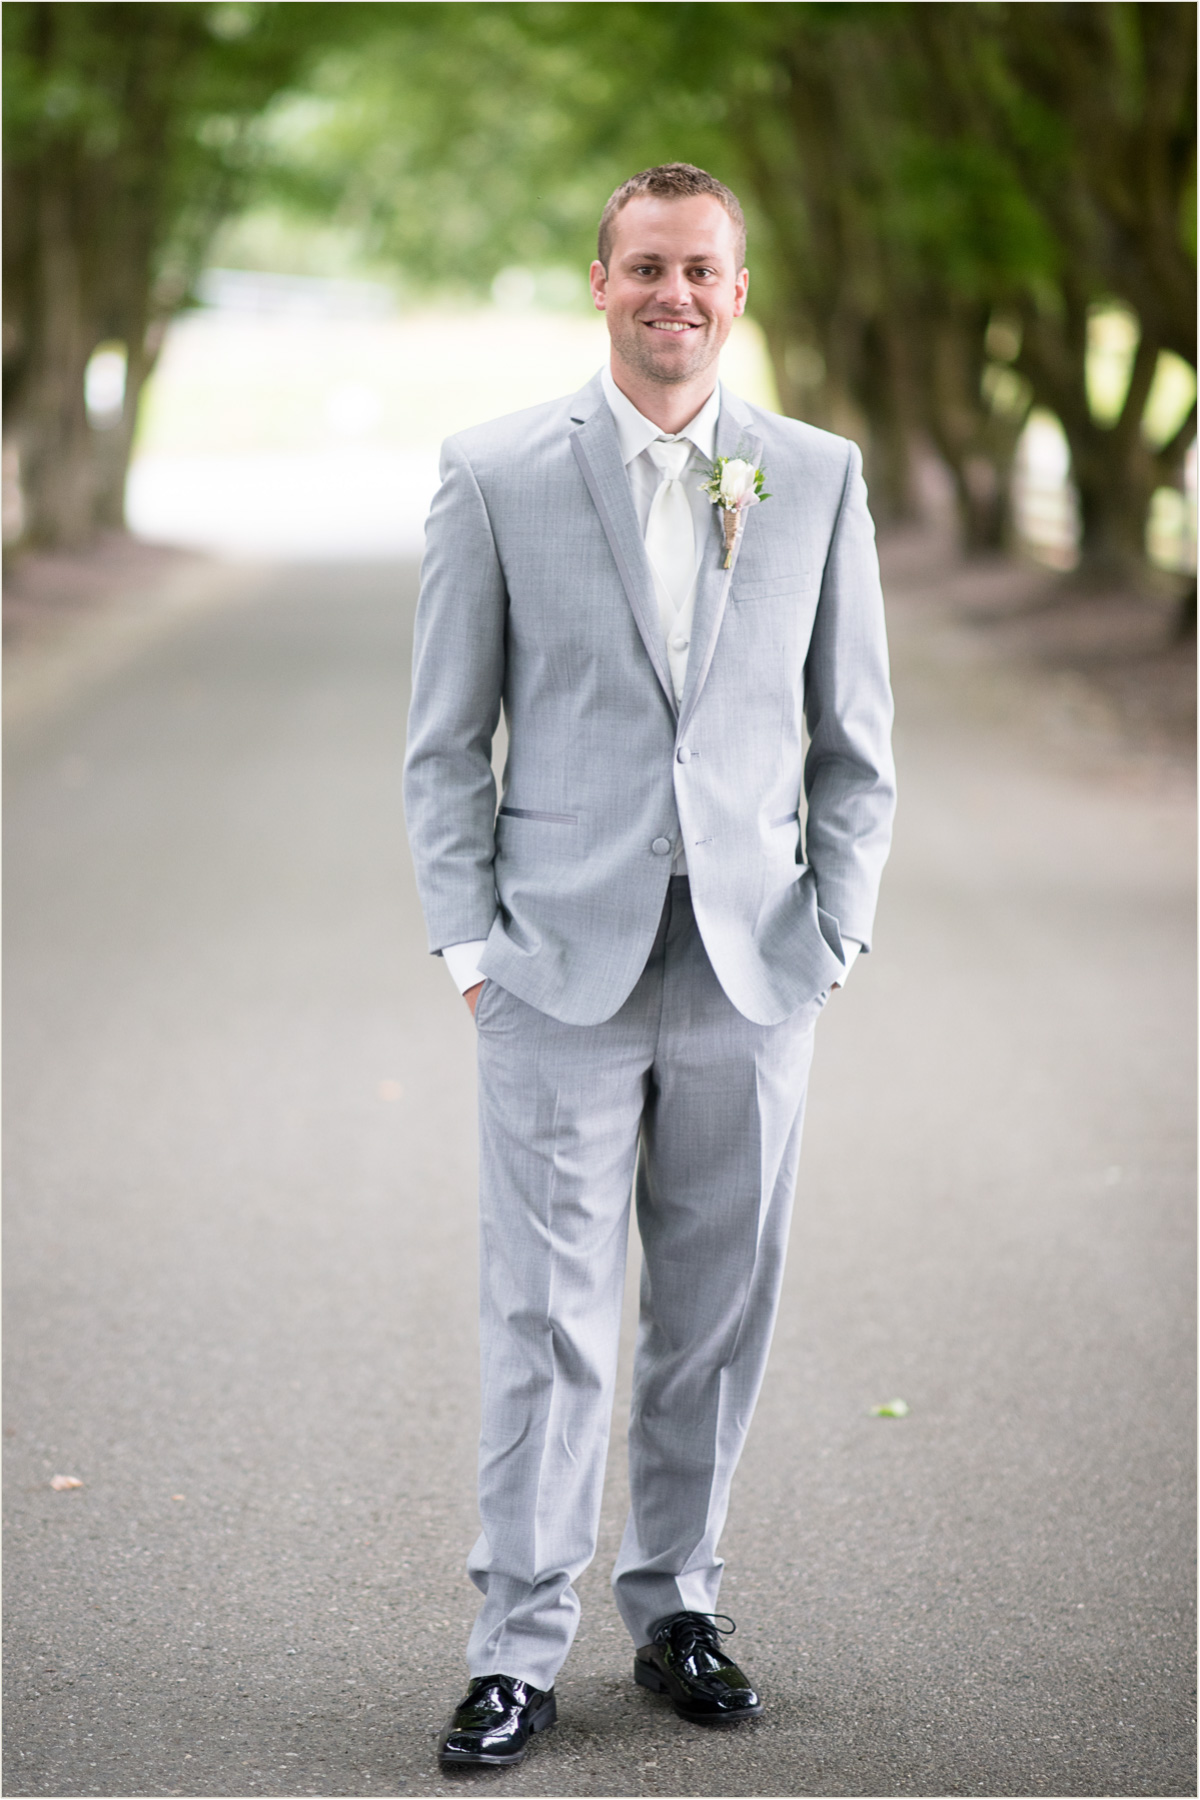 Rustic Groom on Wedding Day